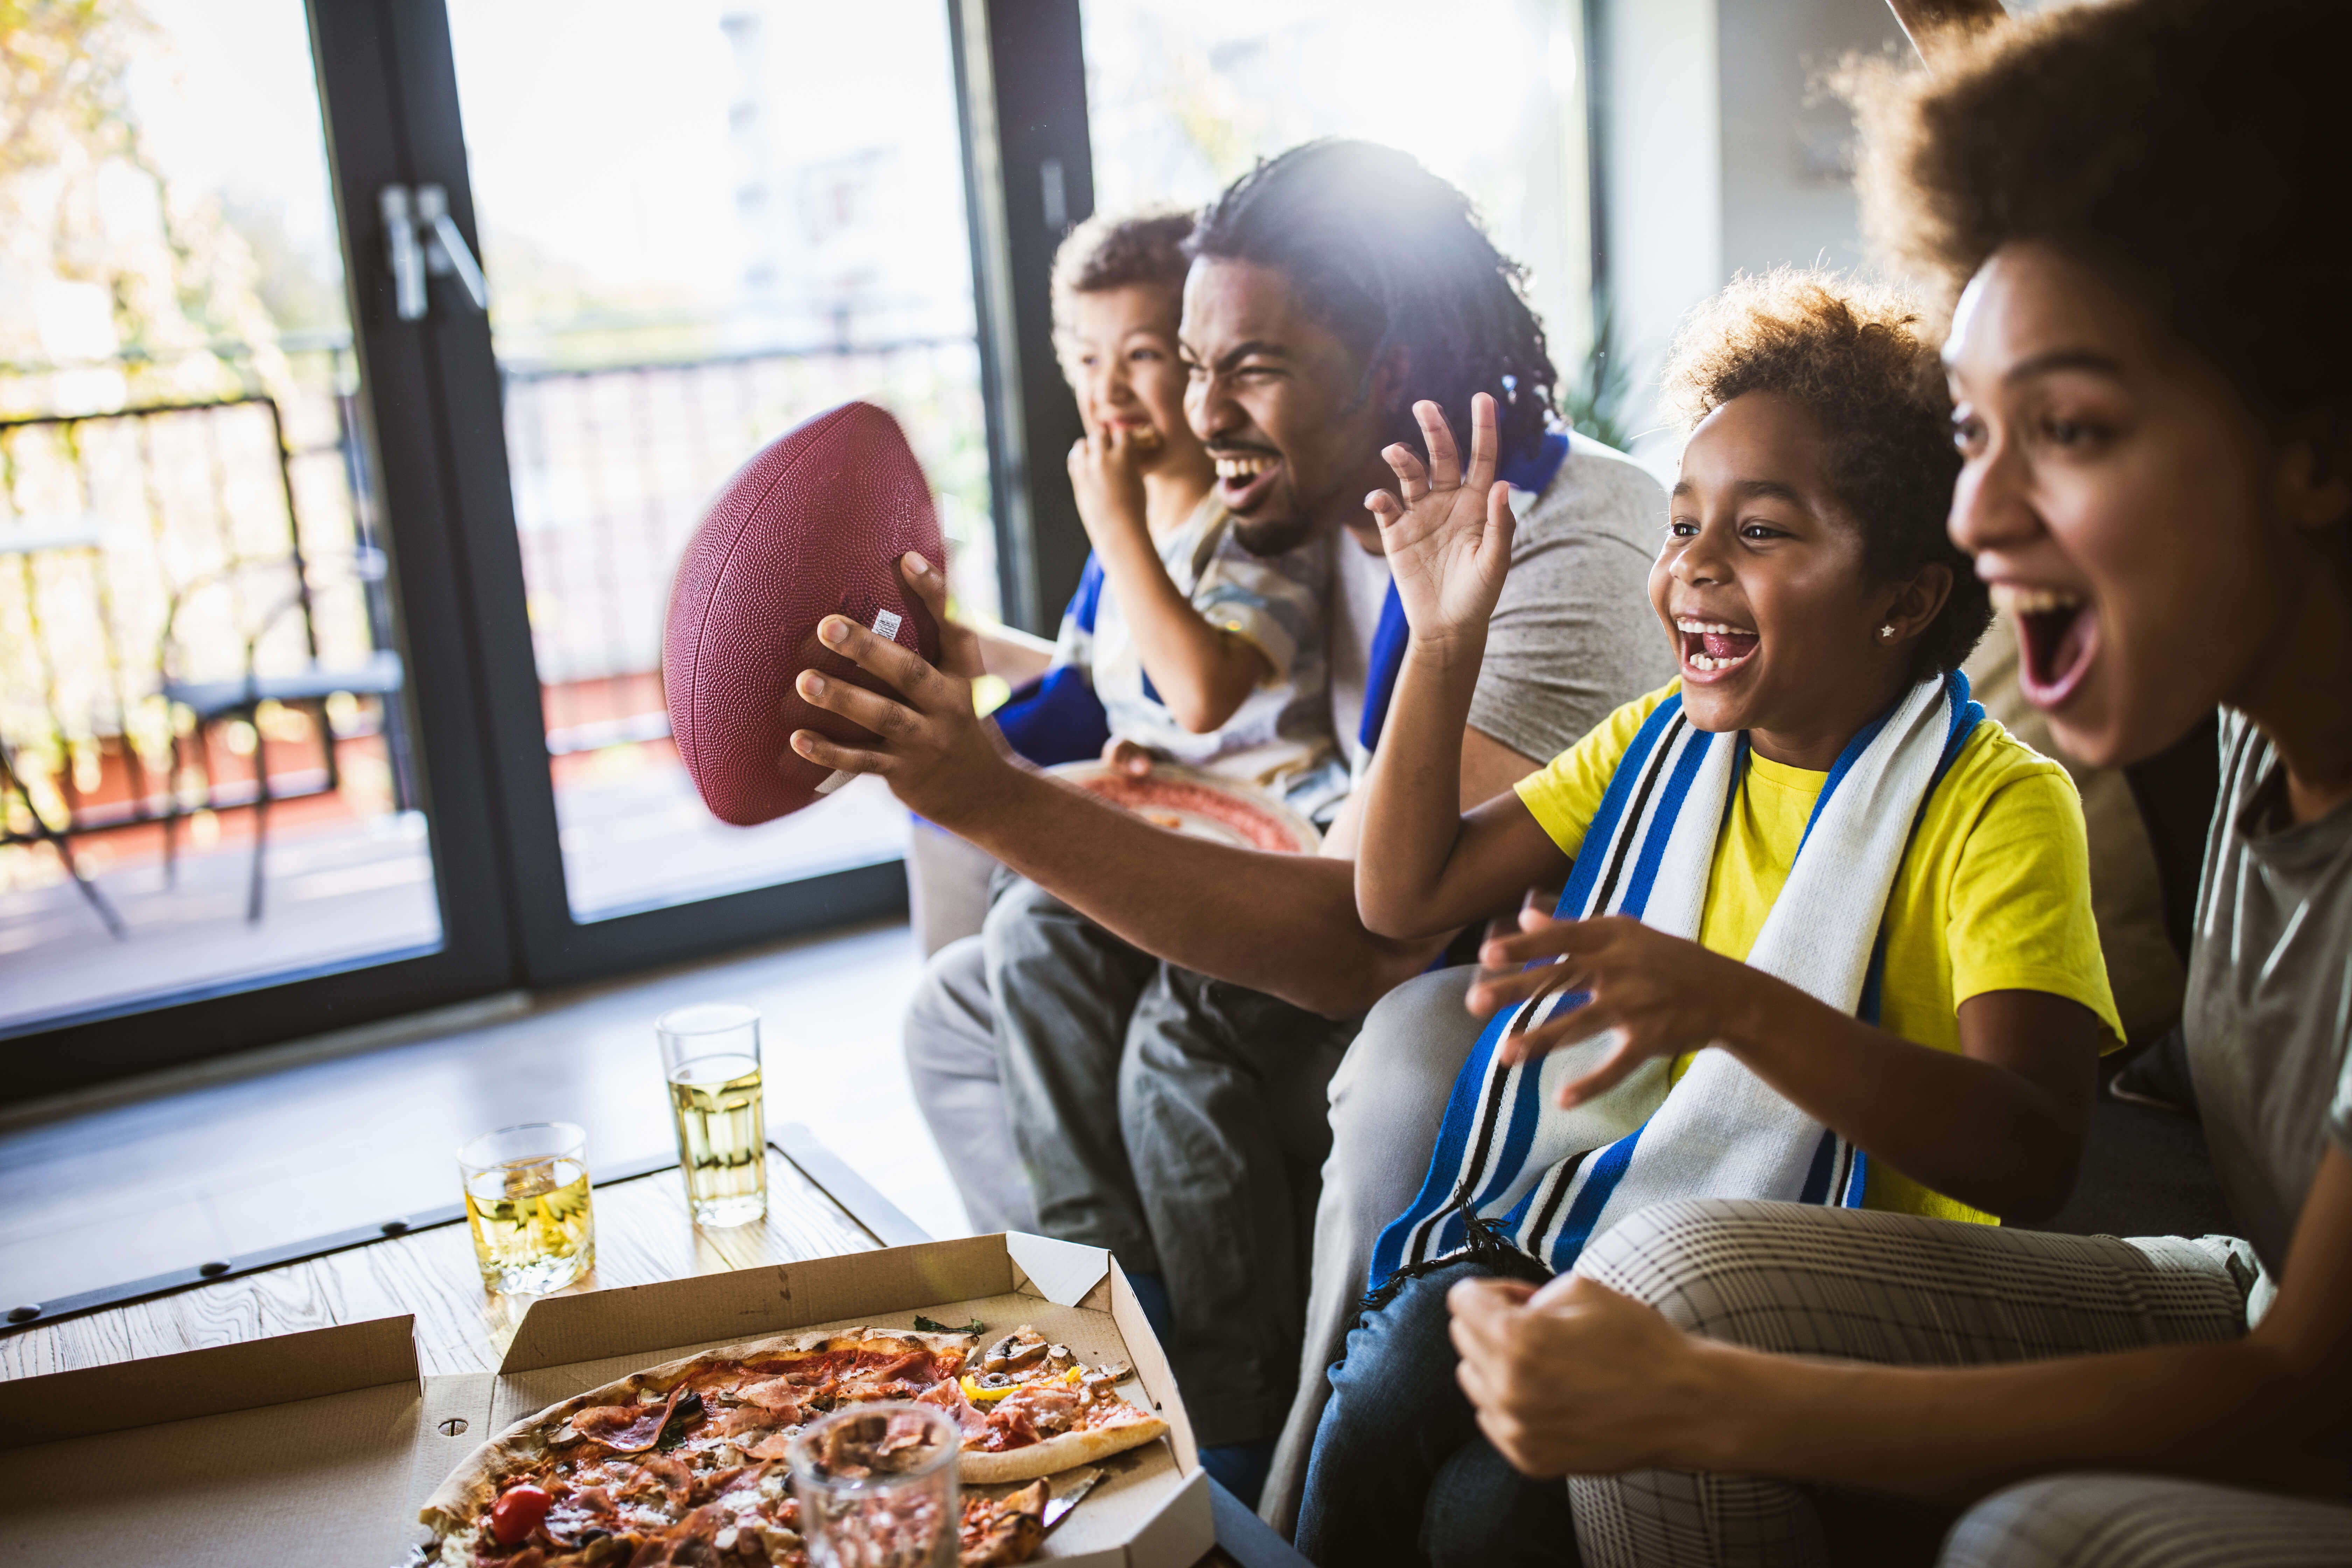 Family eating pizza and watching football together